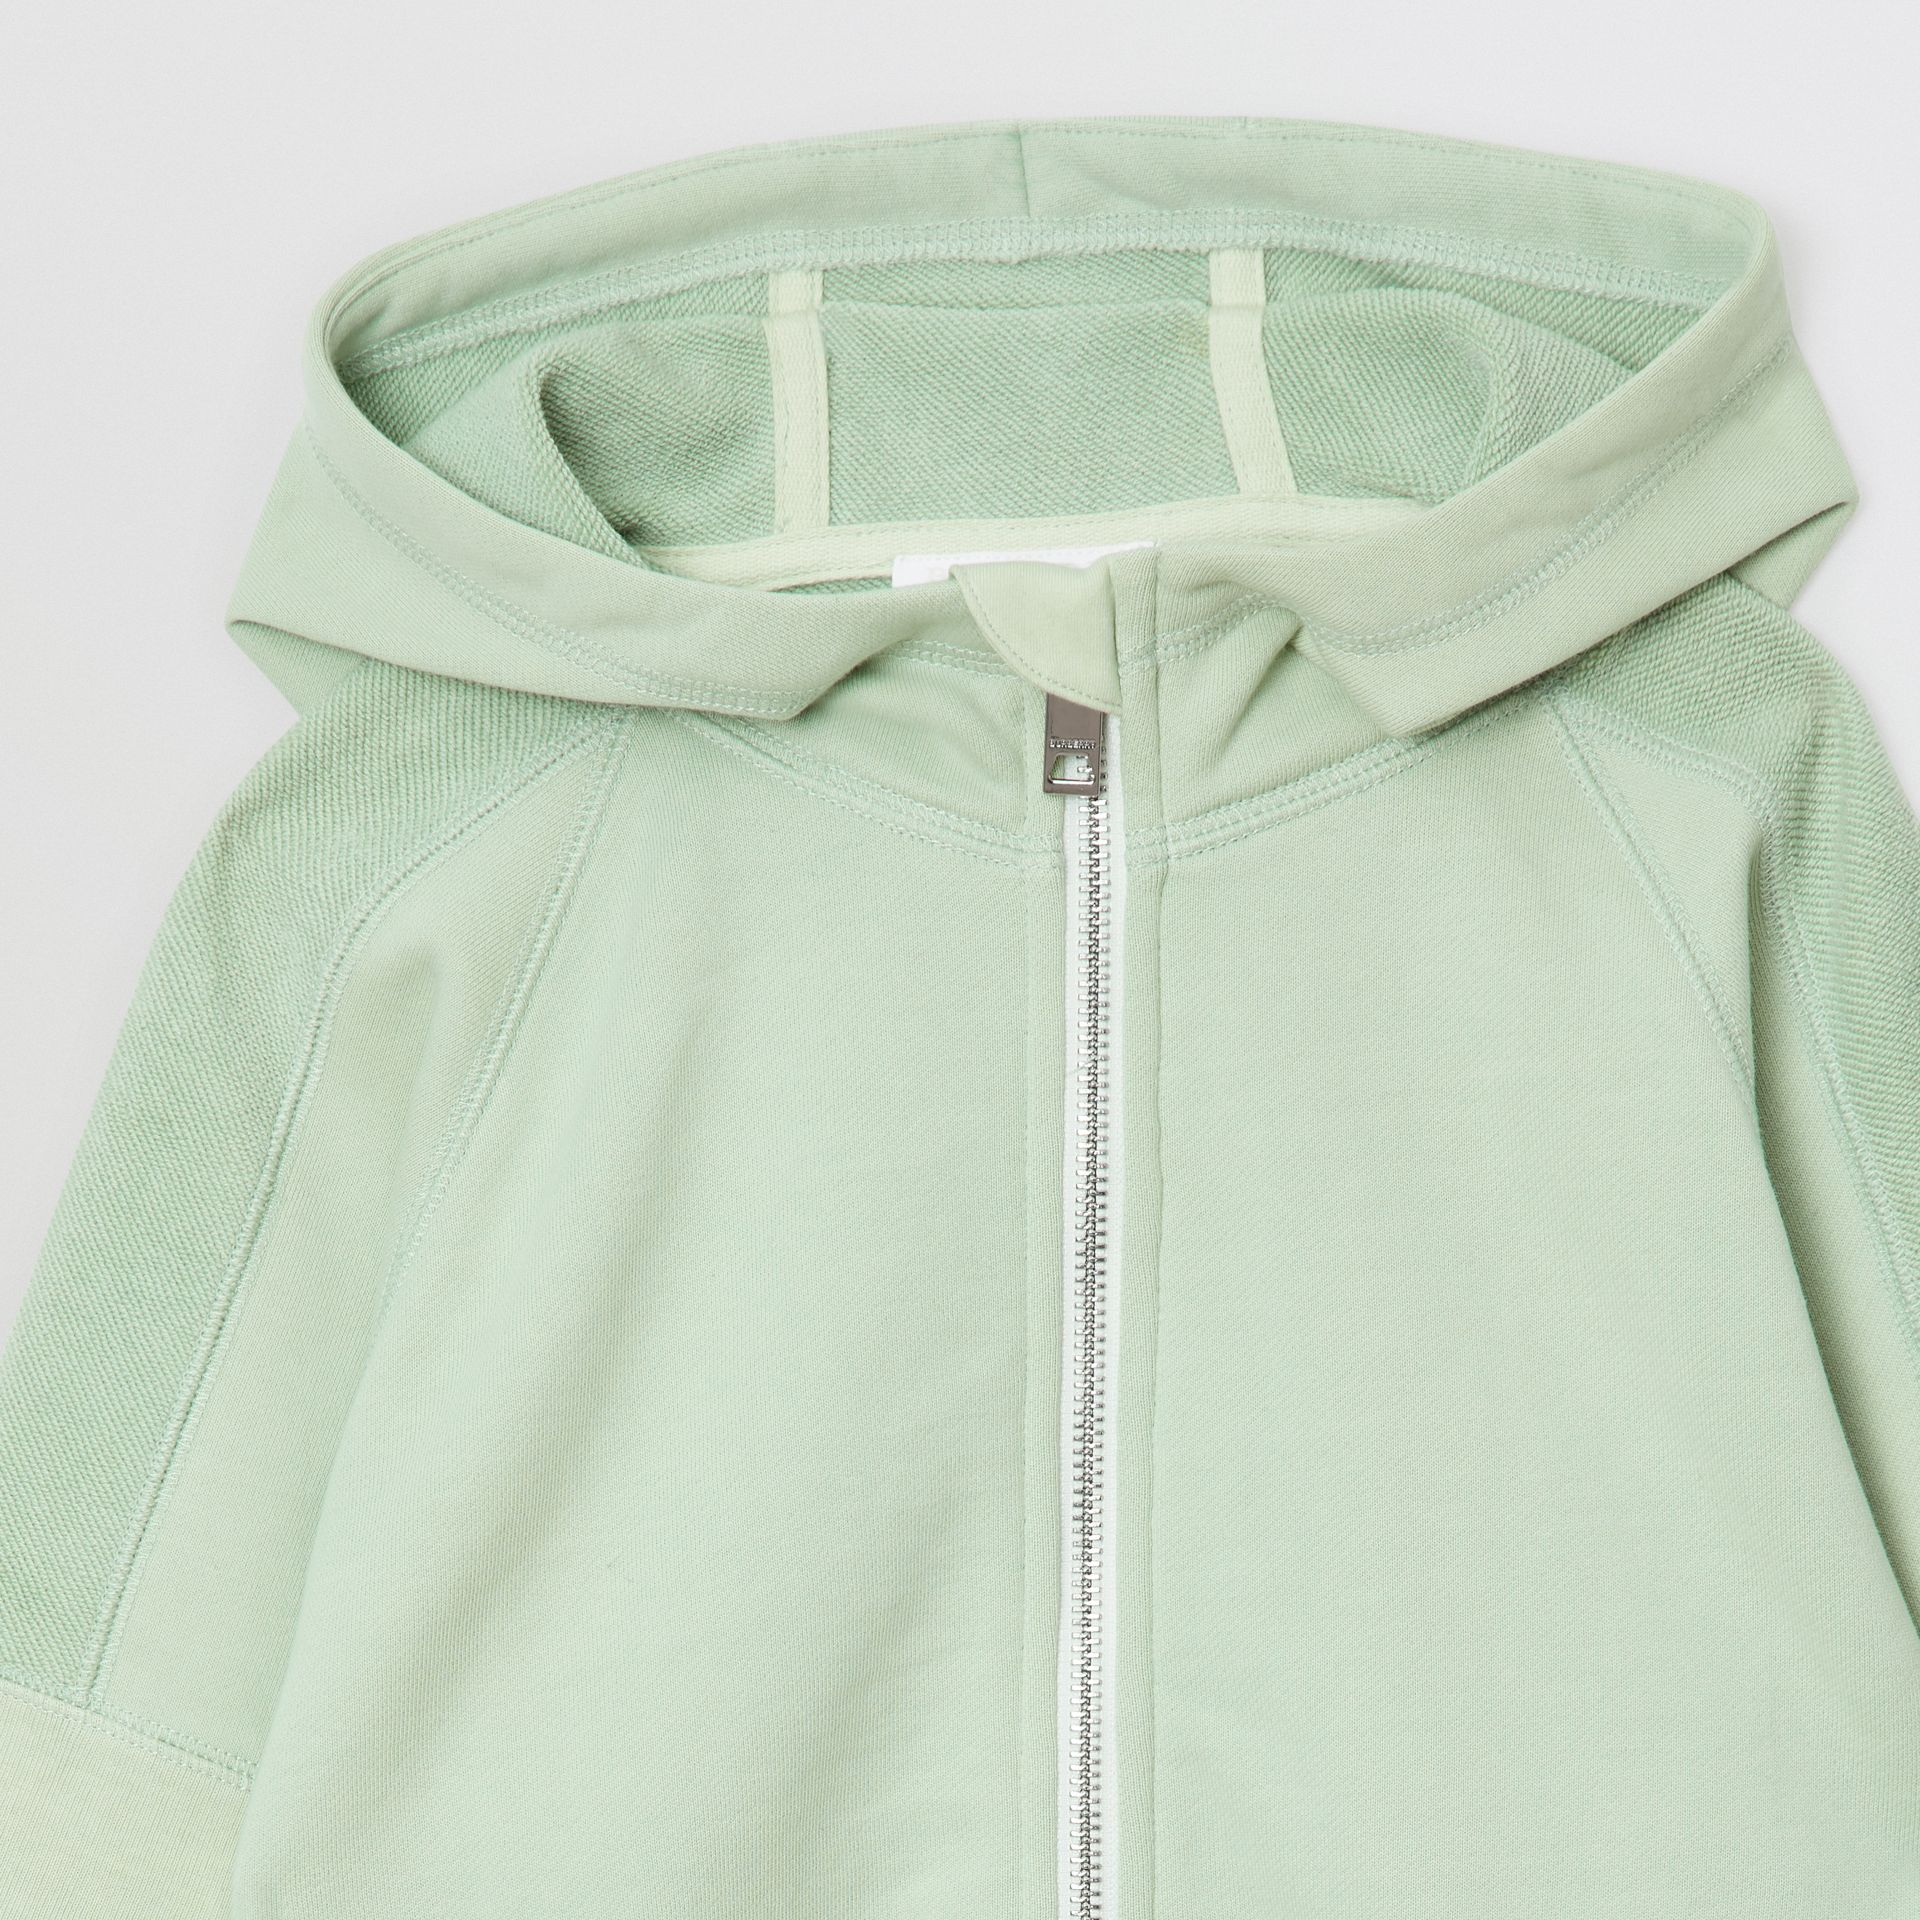 Logo Print Cotton Hooded Top in Pale Mint | Burberry - gallery image 4